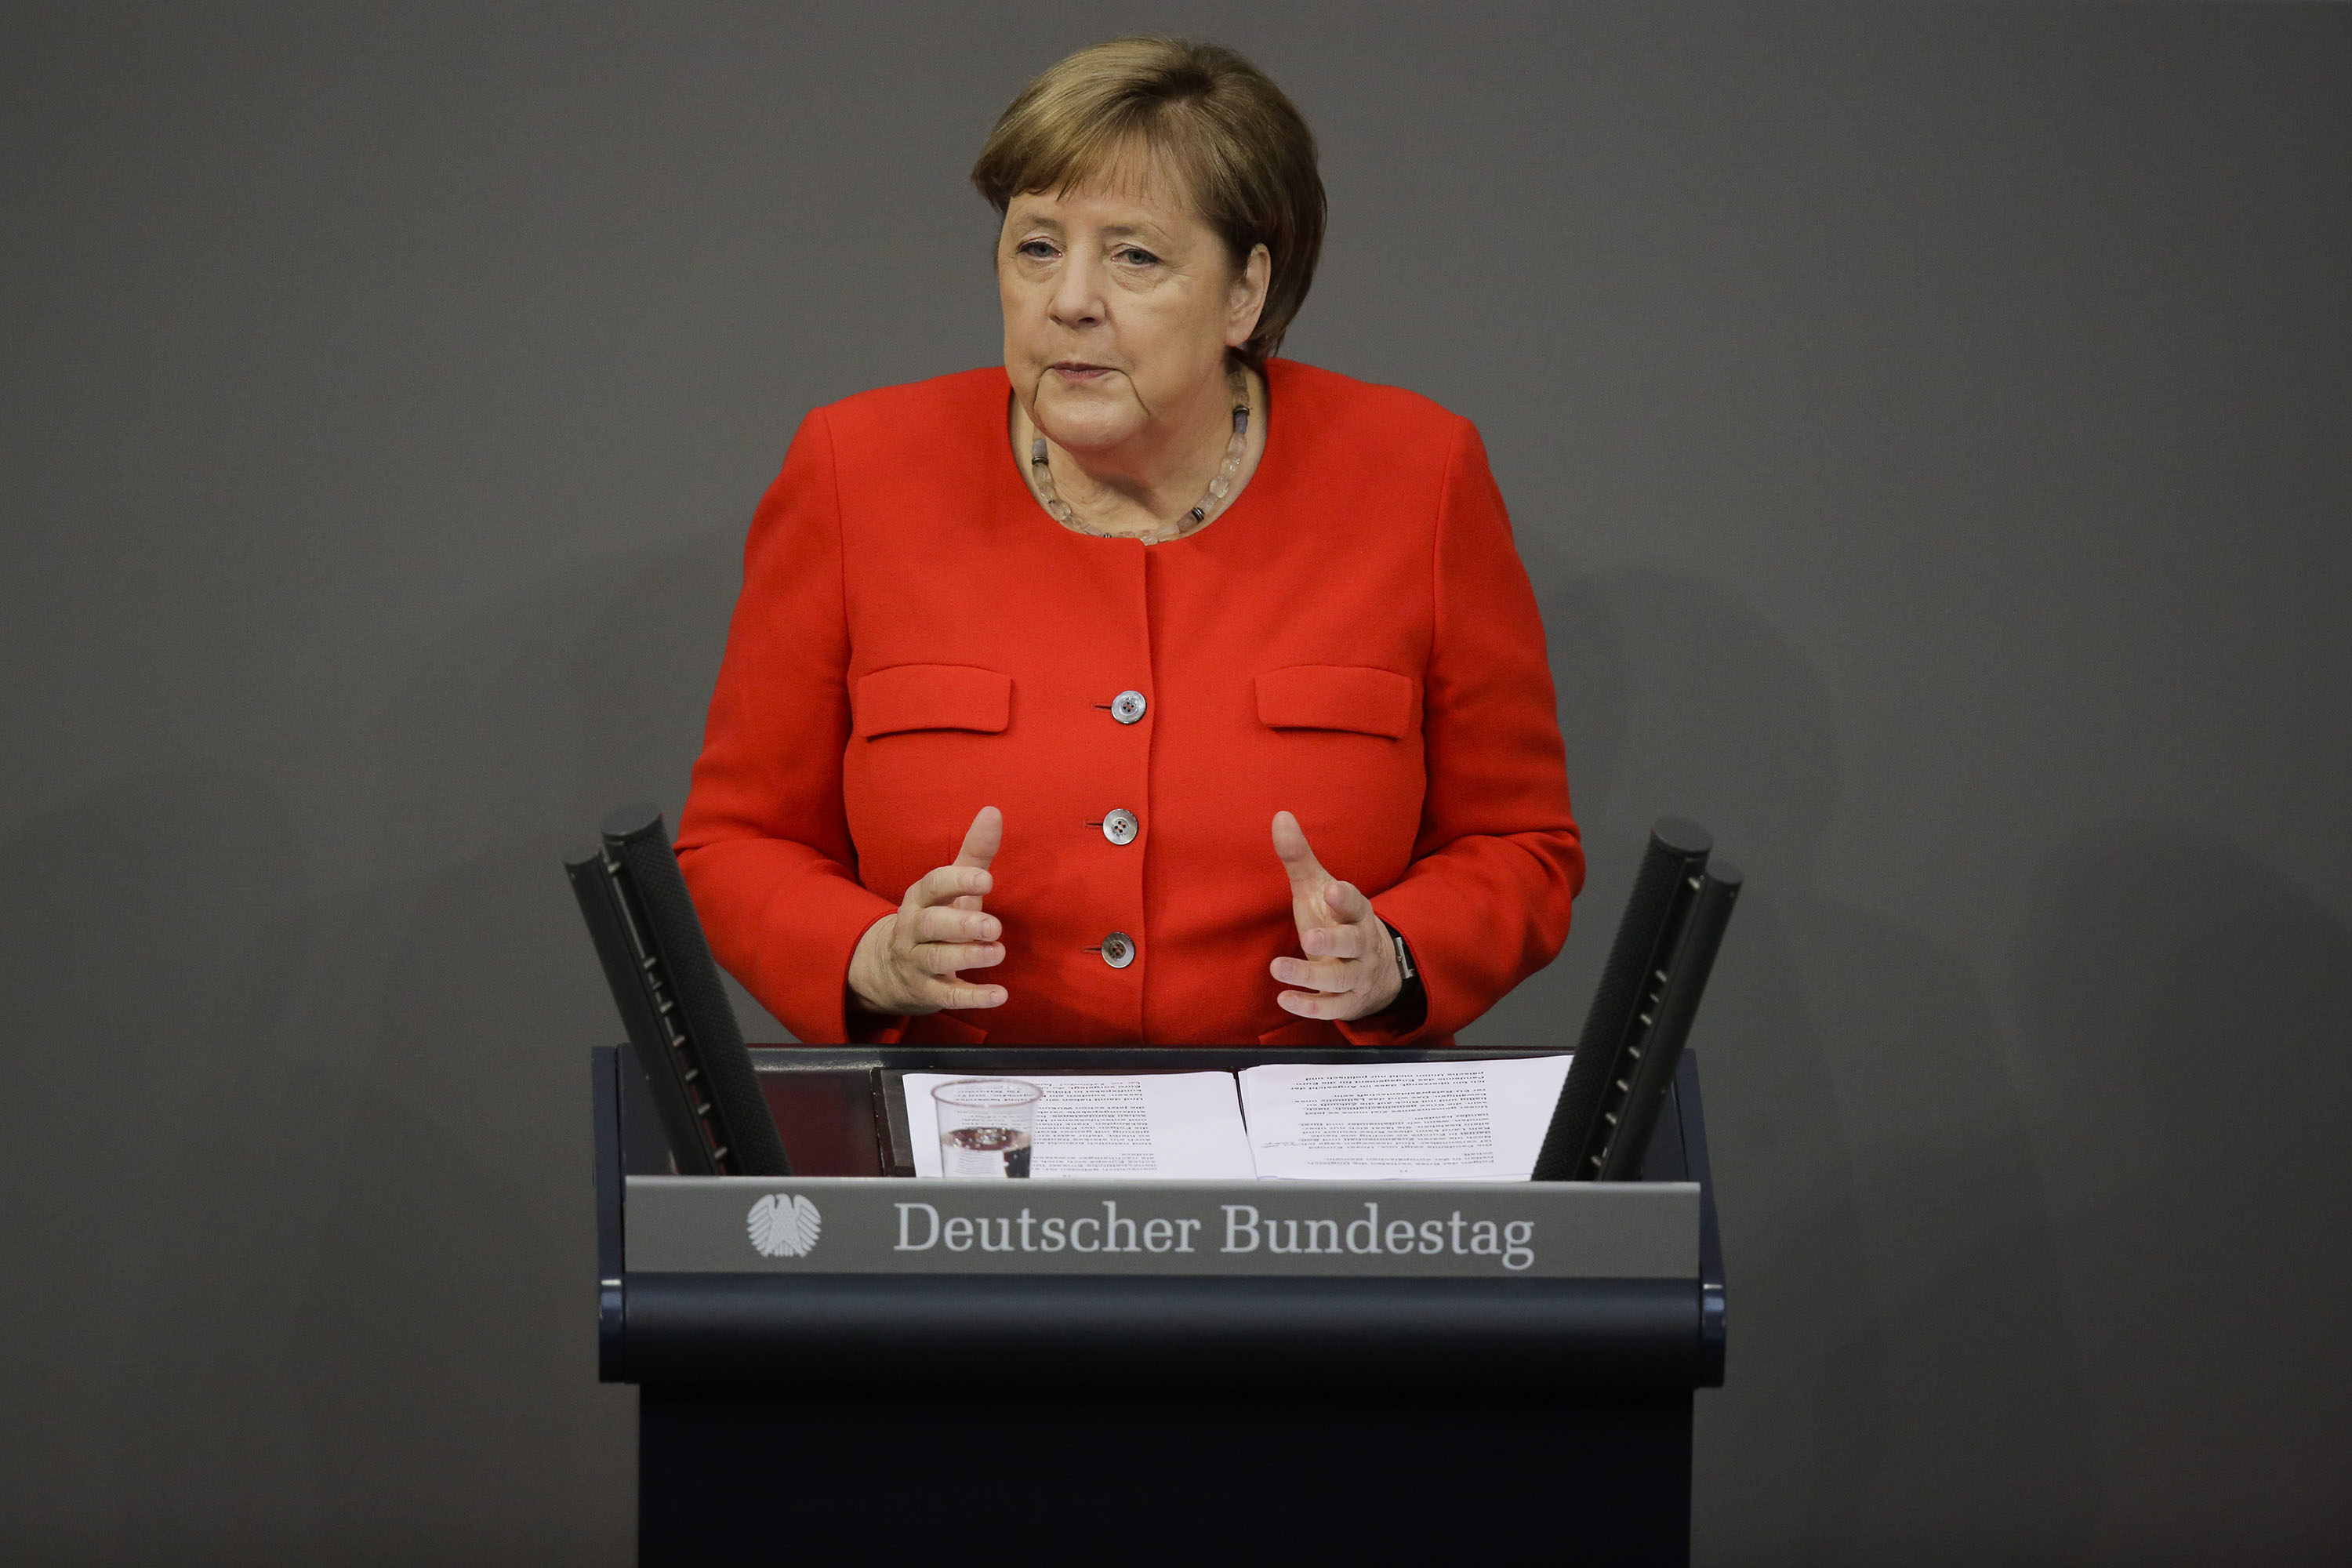 German Chancellor Angela Merkel addresses parliament in Berlin, Germany, on Thursday, June 18.